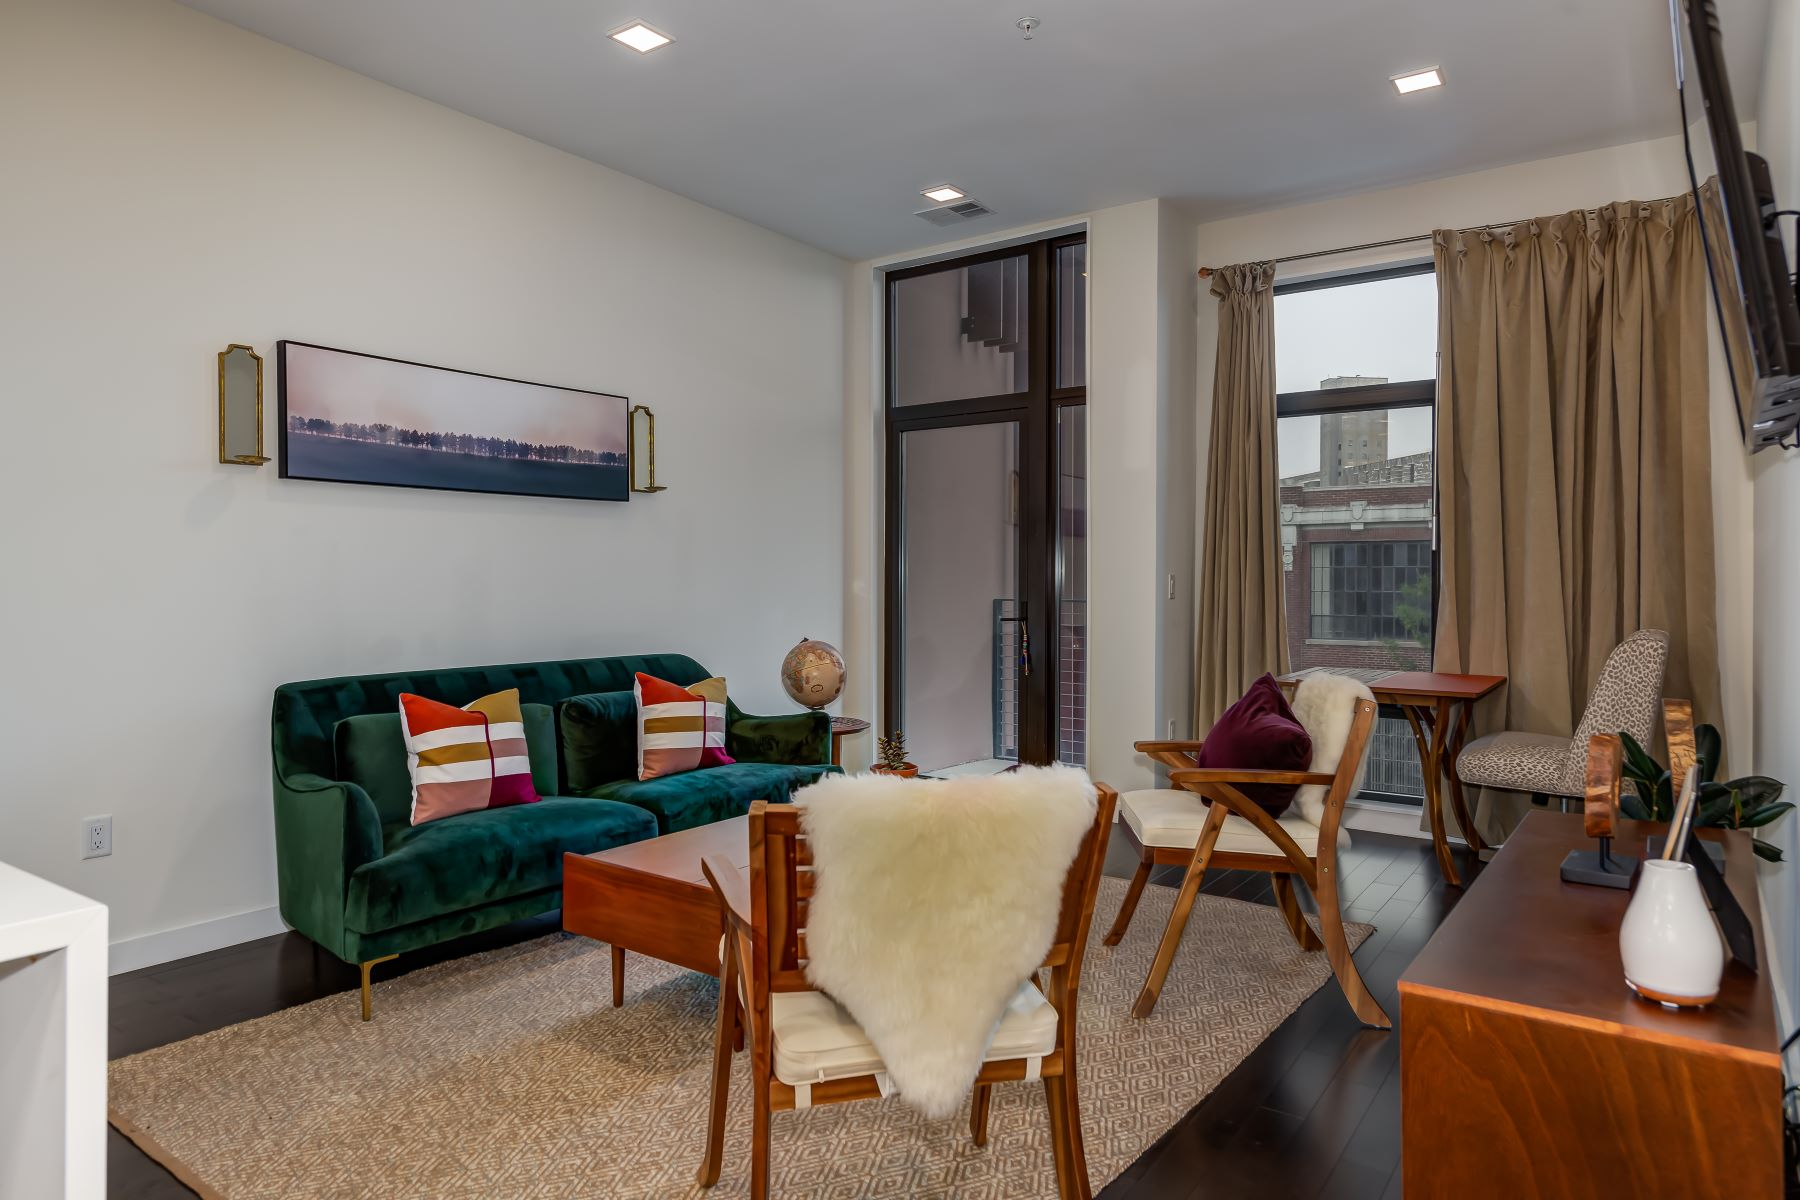 Additional photo for property listing at 4101 Laclede #412 4101 Laclede Ave #412 St. Louis, Missouri 63108 United States